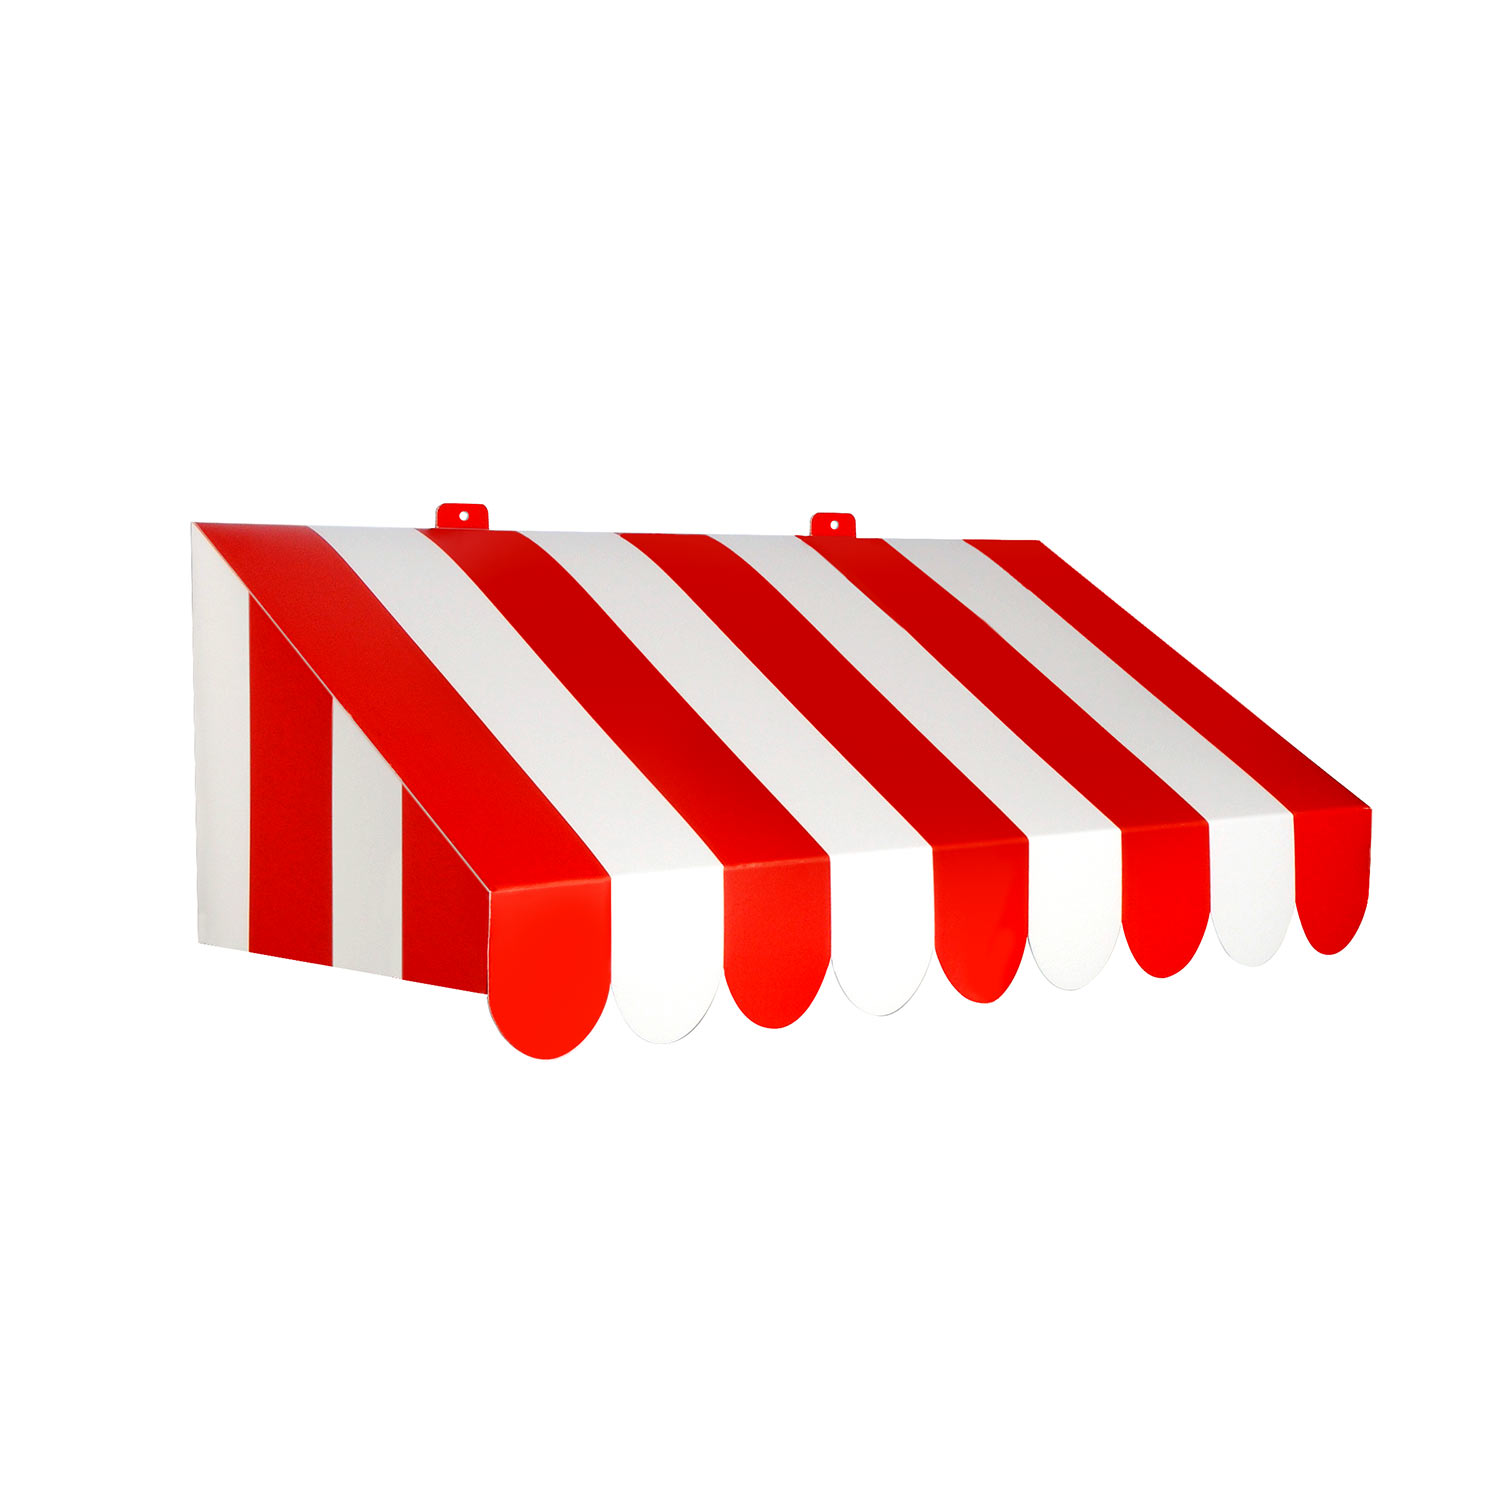 3-D Red & White Awning Wall Decoration designed to replicate carnival strips in red and white.